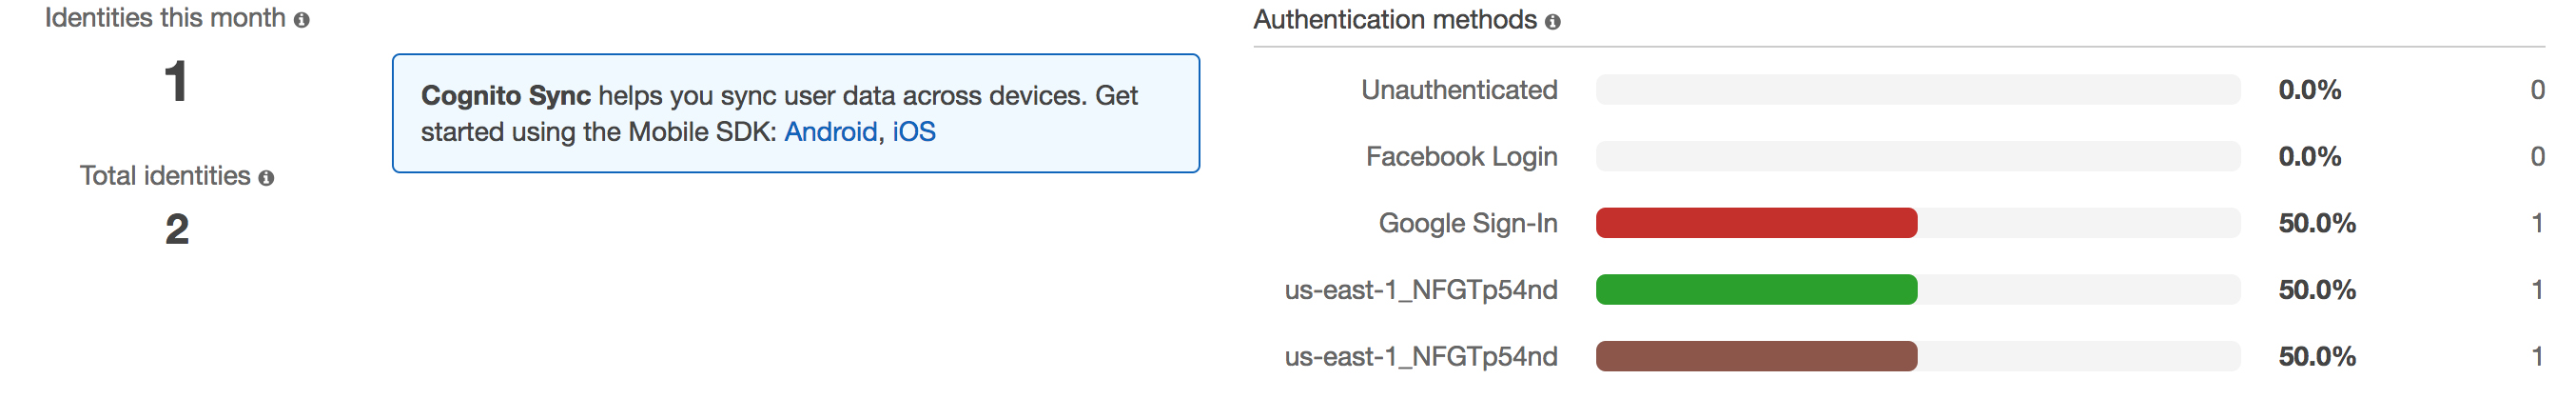 ionic AWS Google oauth identity result